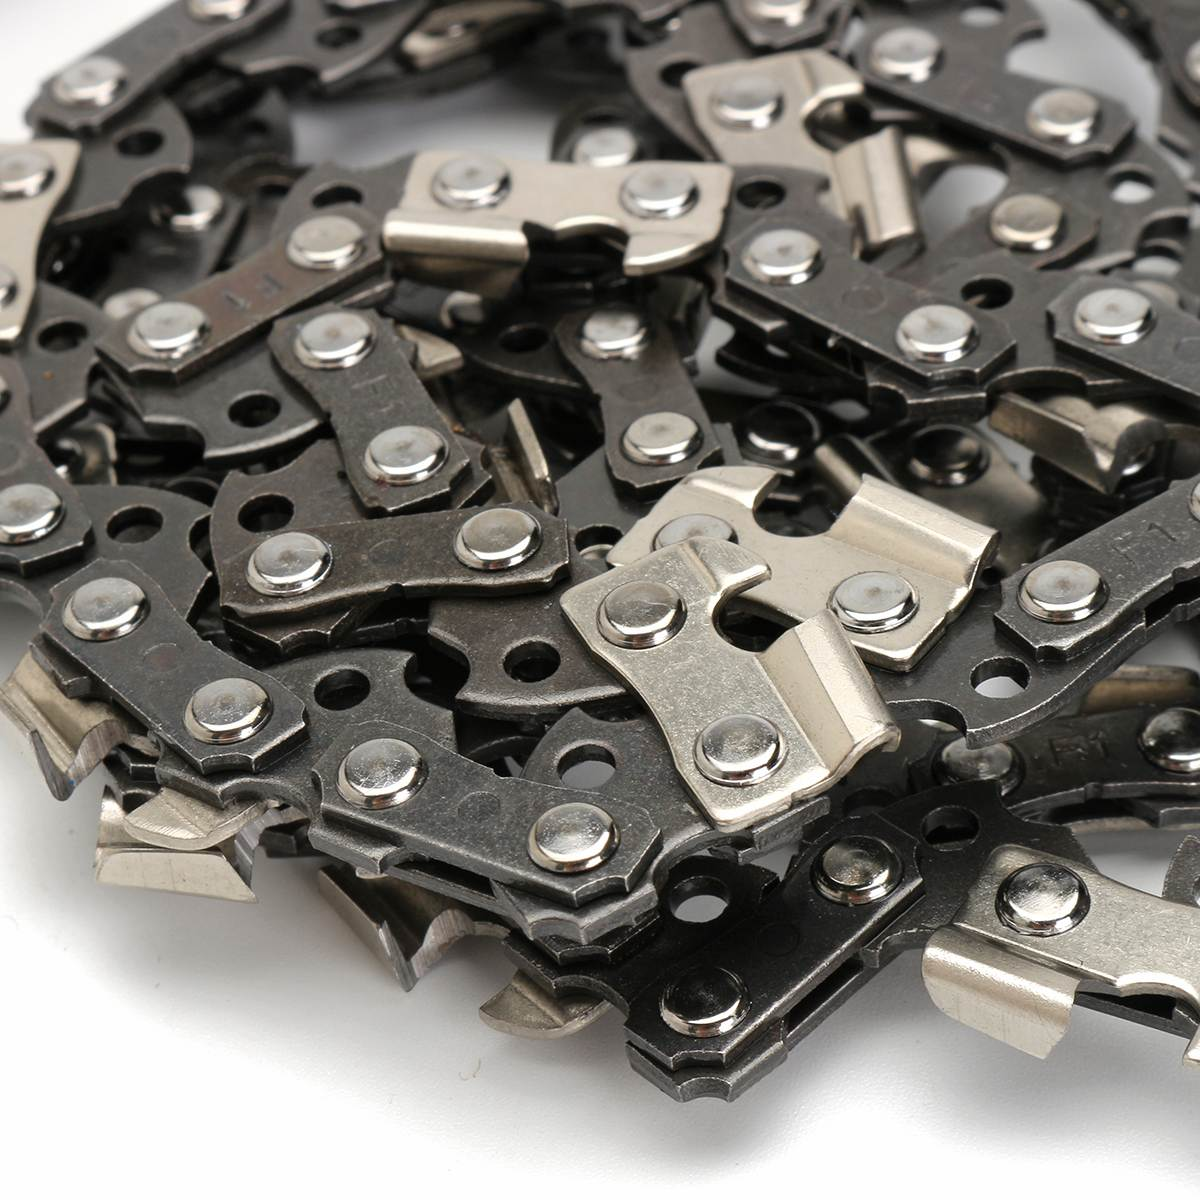 New durable 4pcs chainsaw files 50 52 chains for 14 mcculloch 335 new durable 4pcs chainsaw files 50 52 chains for 14 mcculloch 335 338 435 438 463 in tools from home garden on aliexpress alibaba group greentooth Choice Image